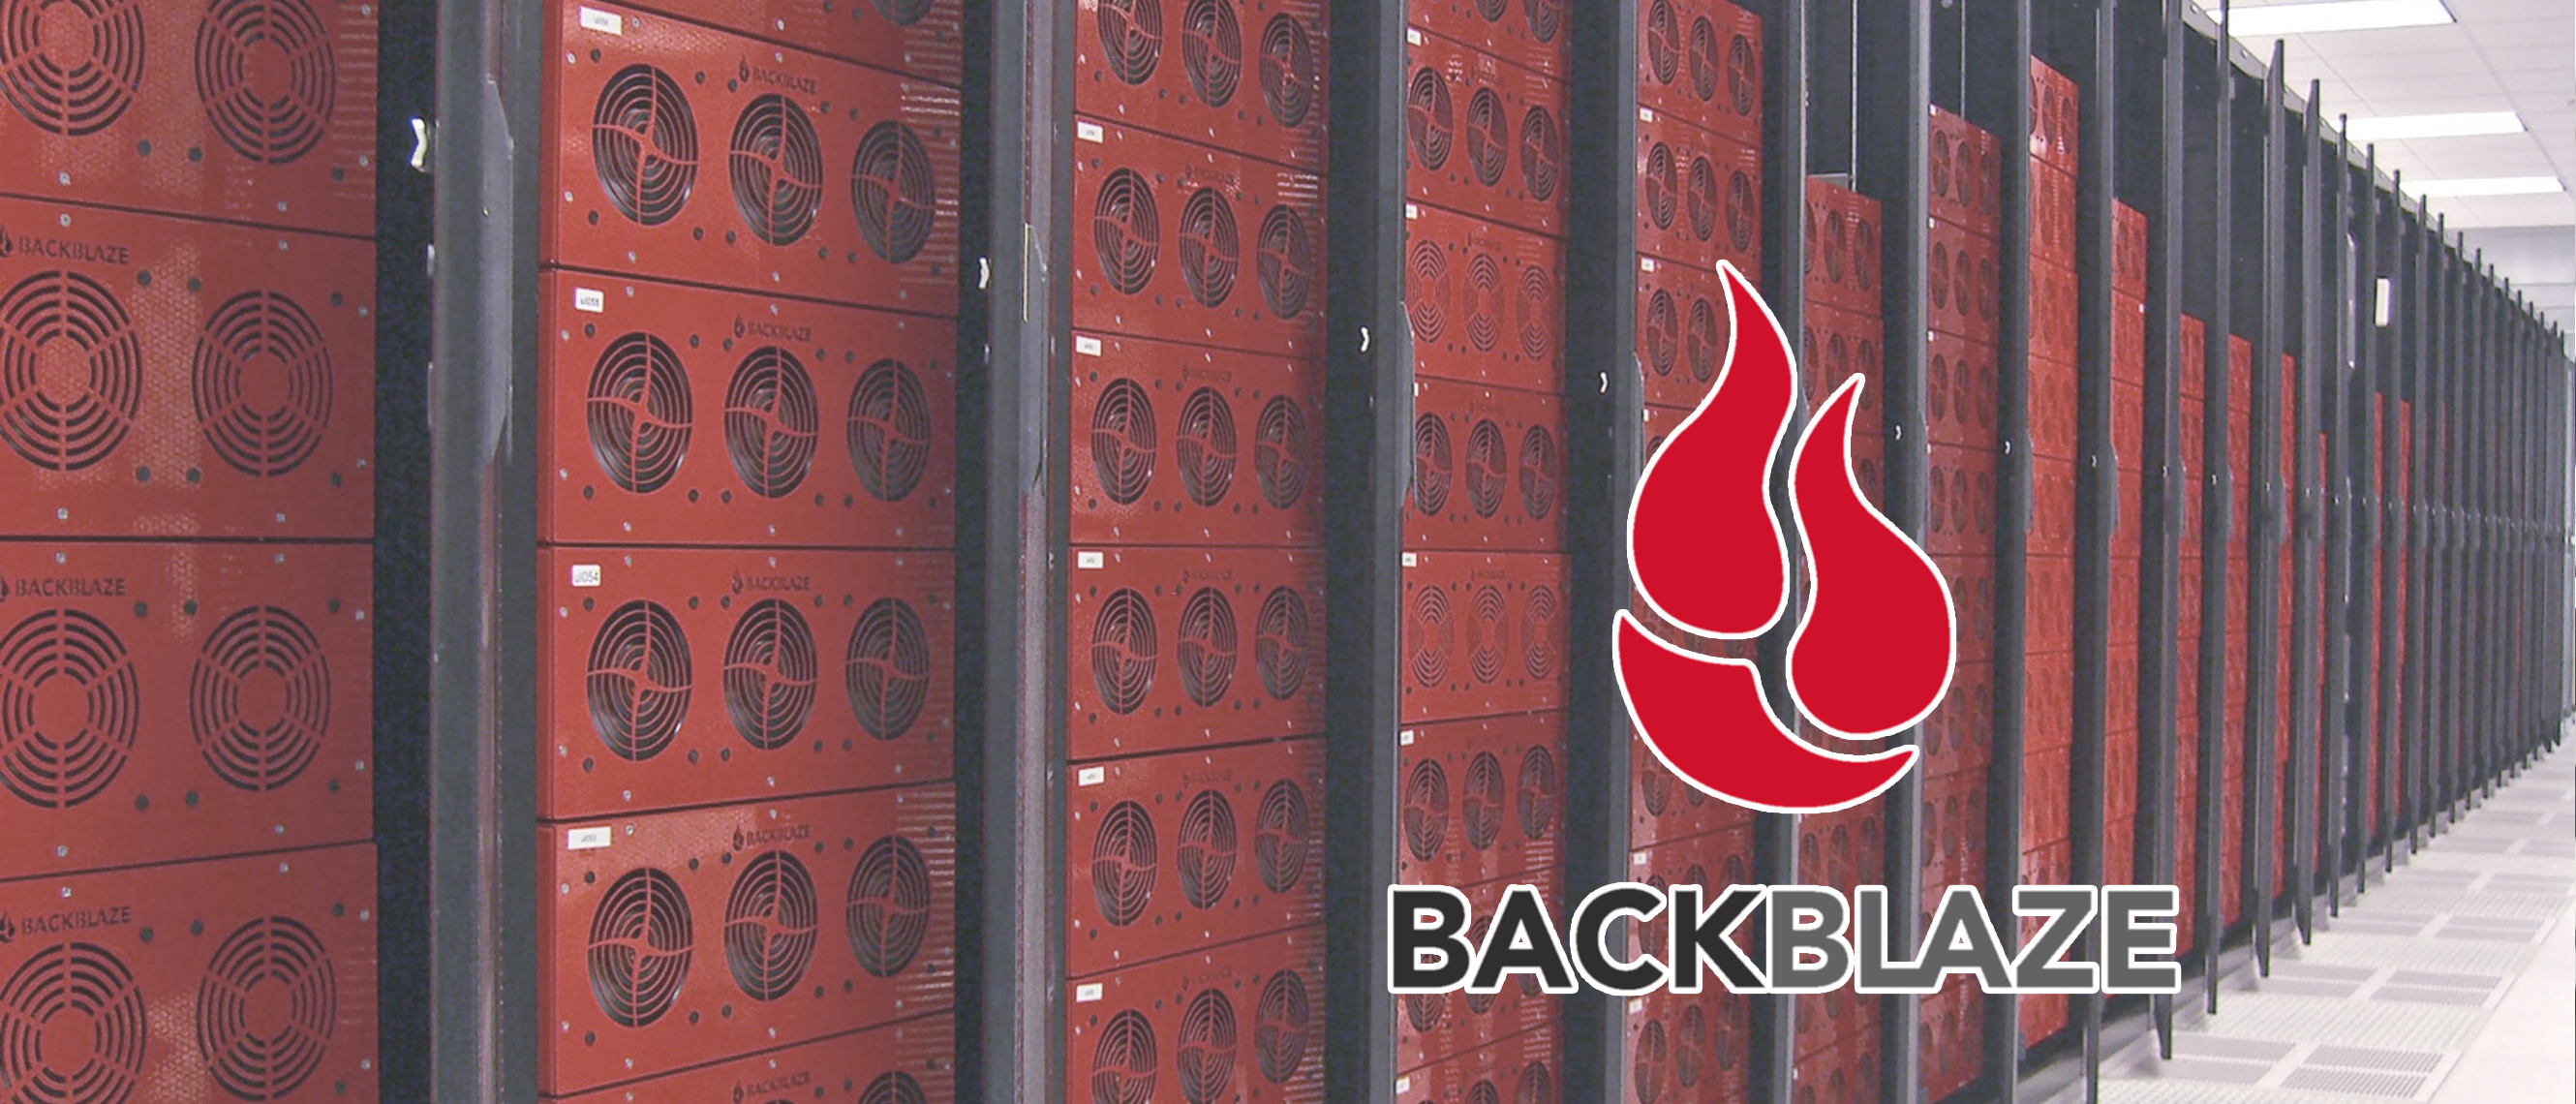 switching to backblaze